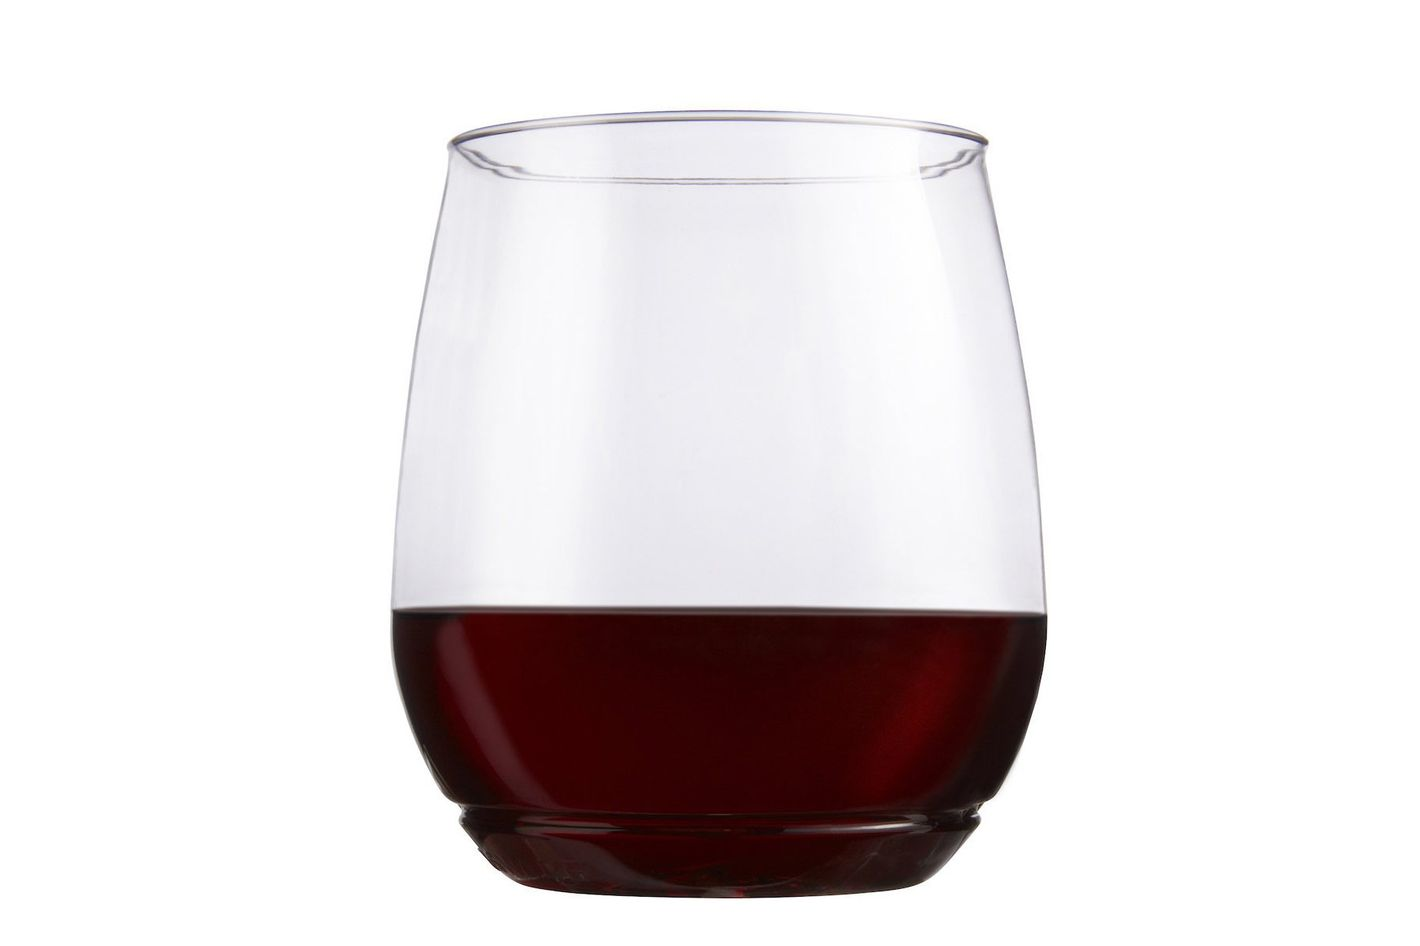 TOSSWARE 14oz Shatterproof Wine & Cocktail Glasses, Set of 12